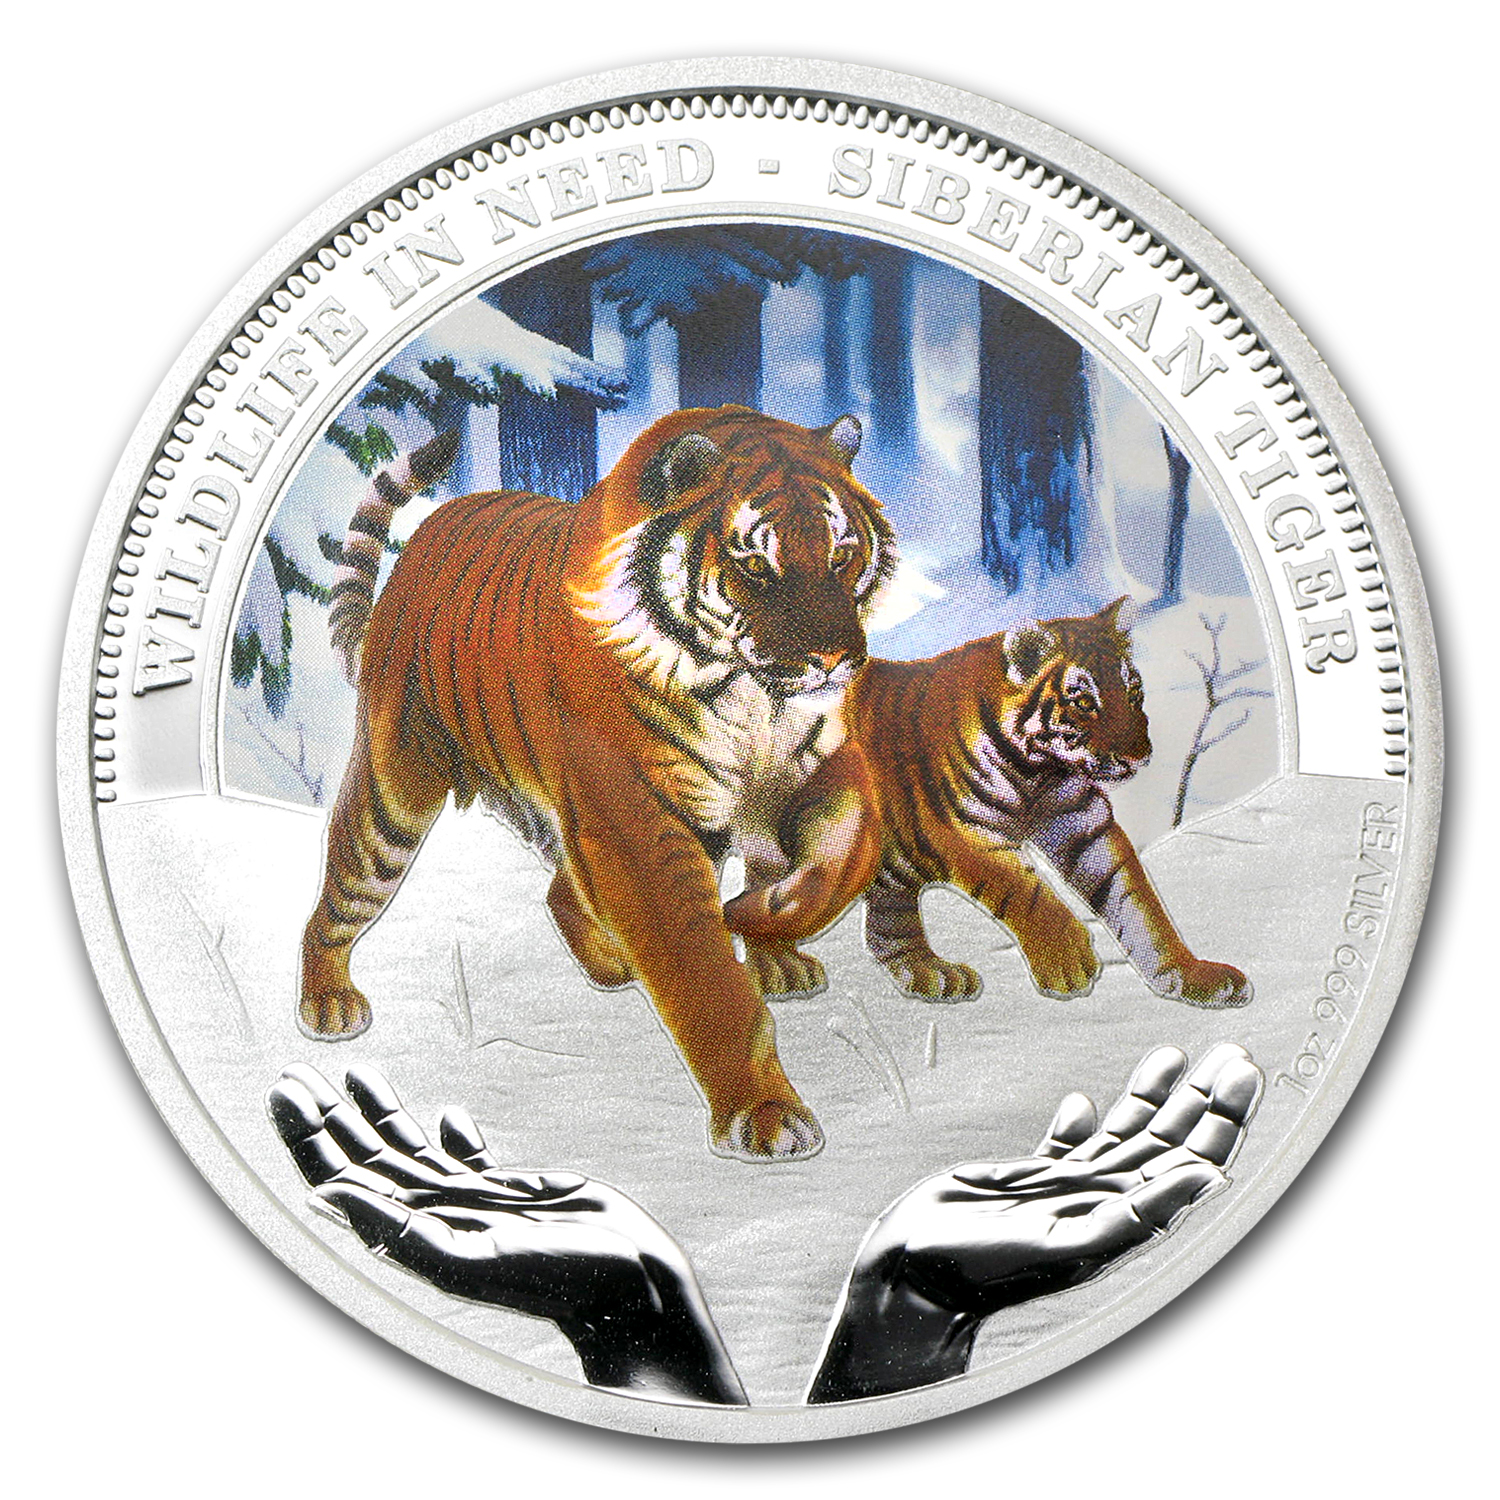 2012 1 oz Silver Tuvalu Siberian Tiger Proof